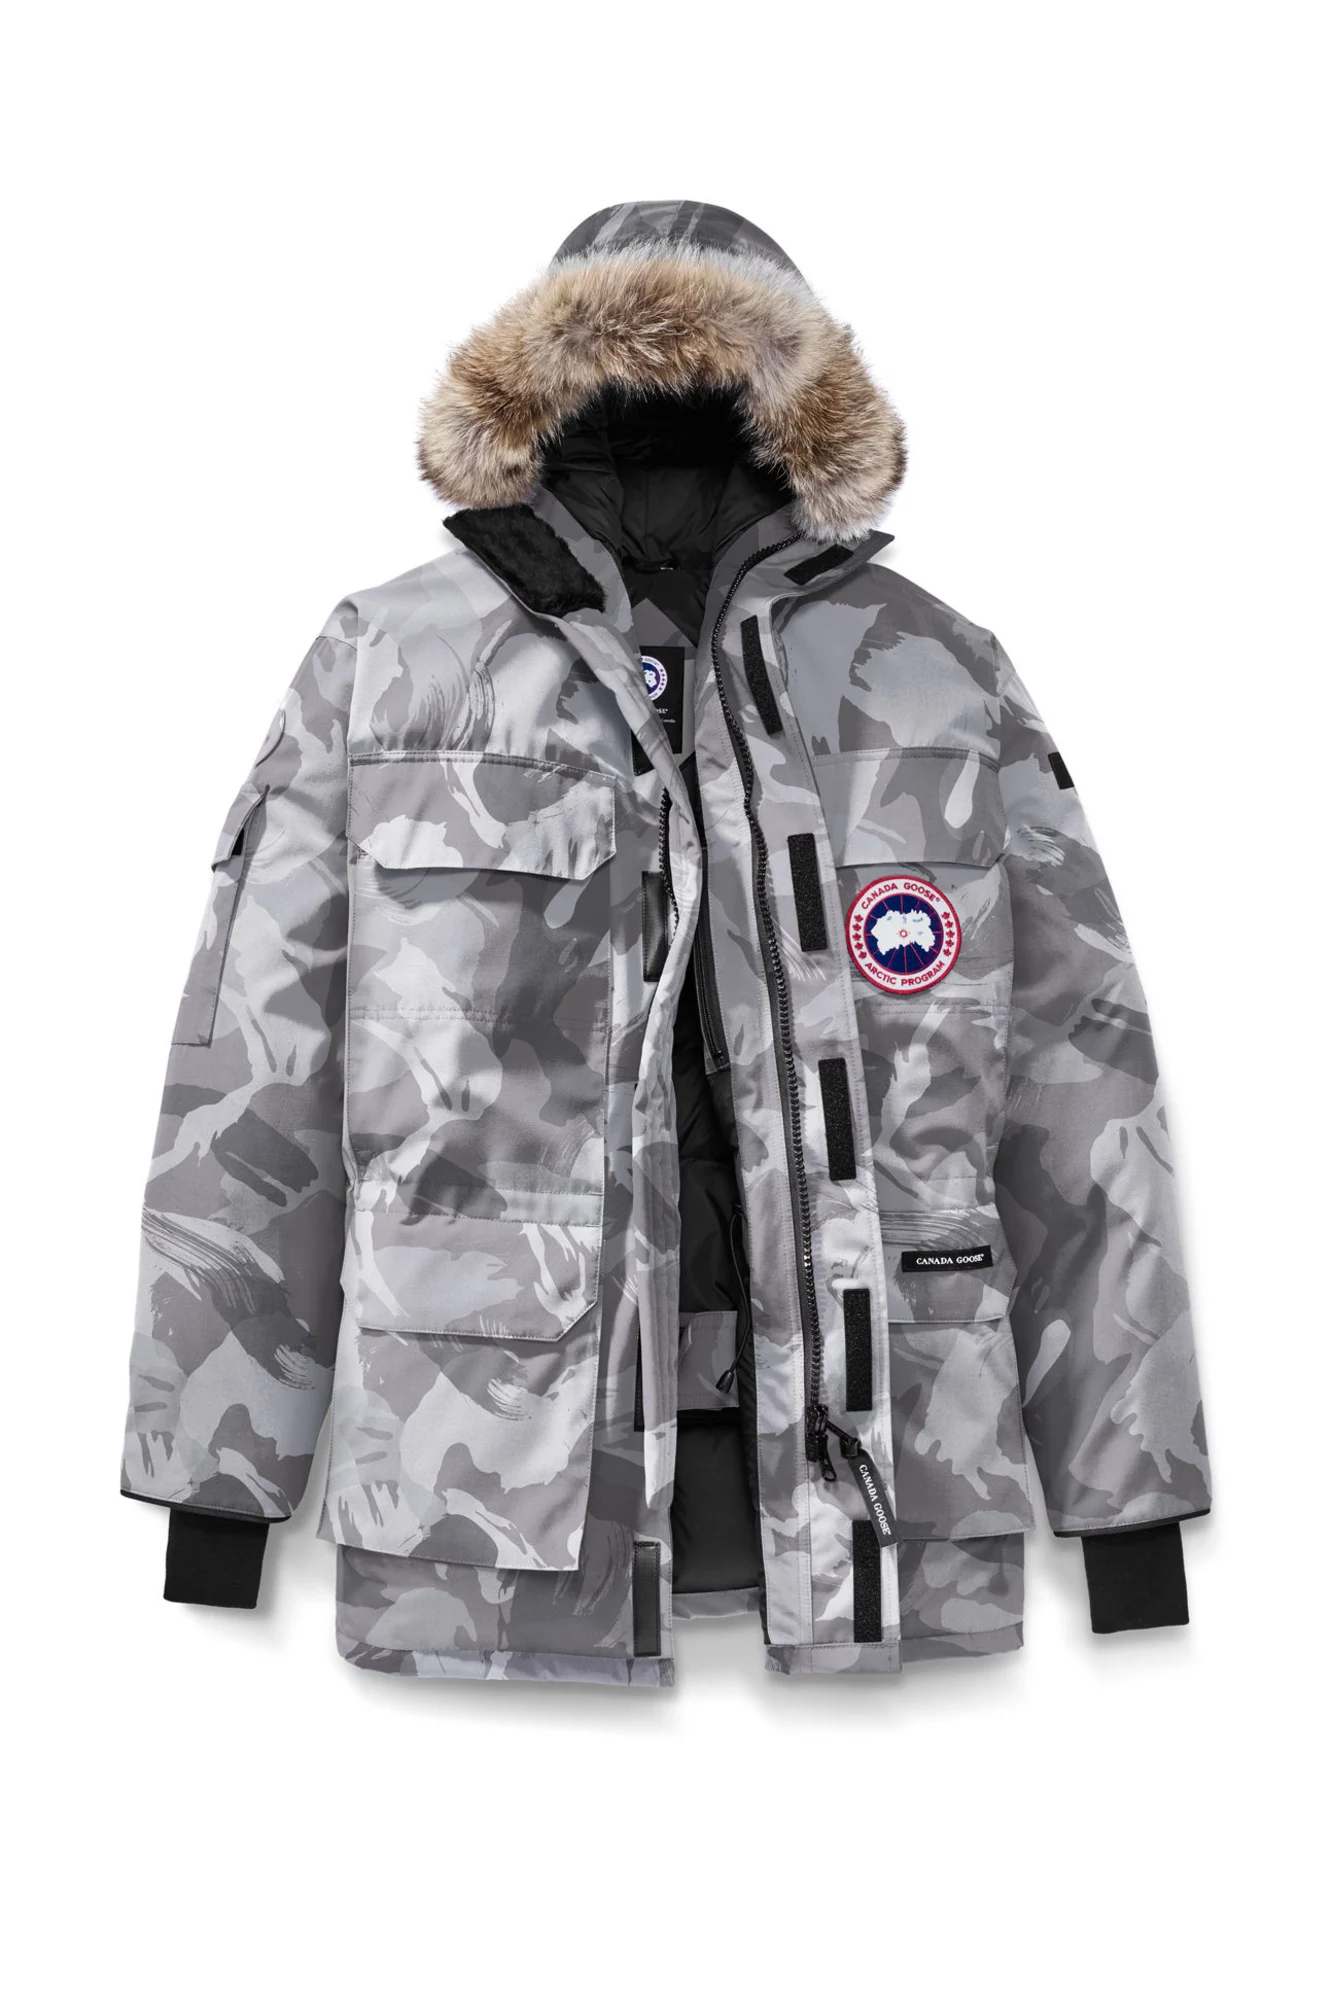 EXPEDITION PARKA MEN'S MILITARY 5918